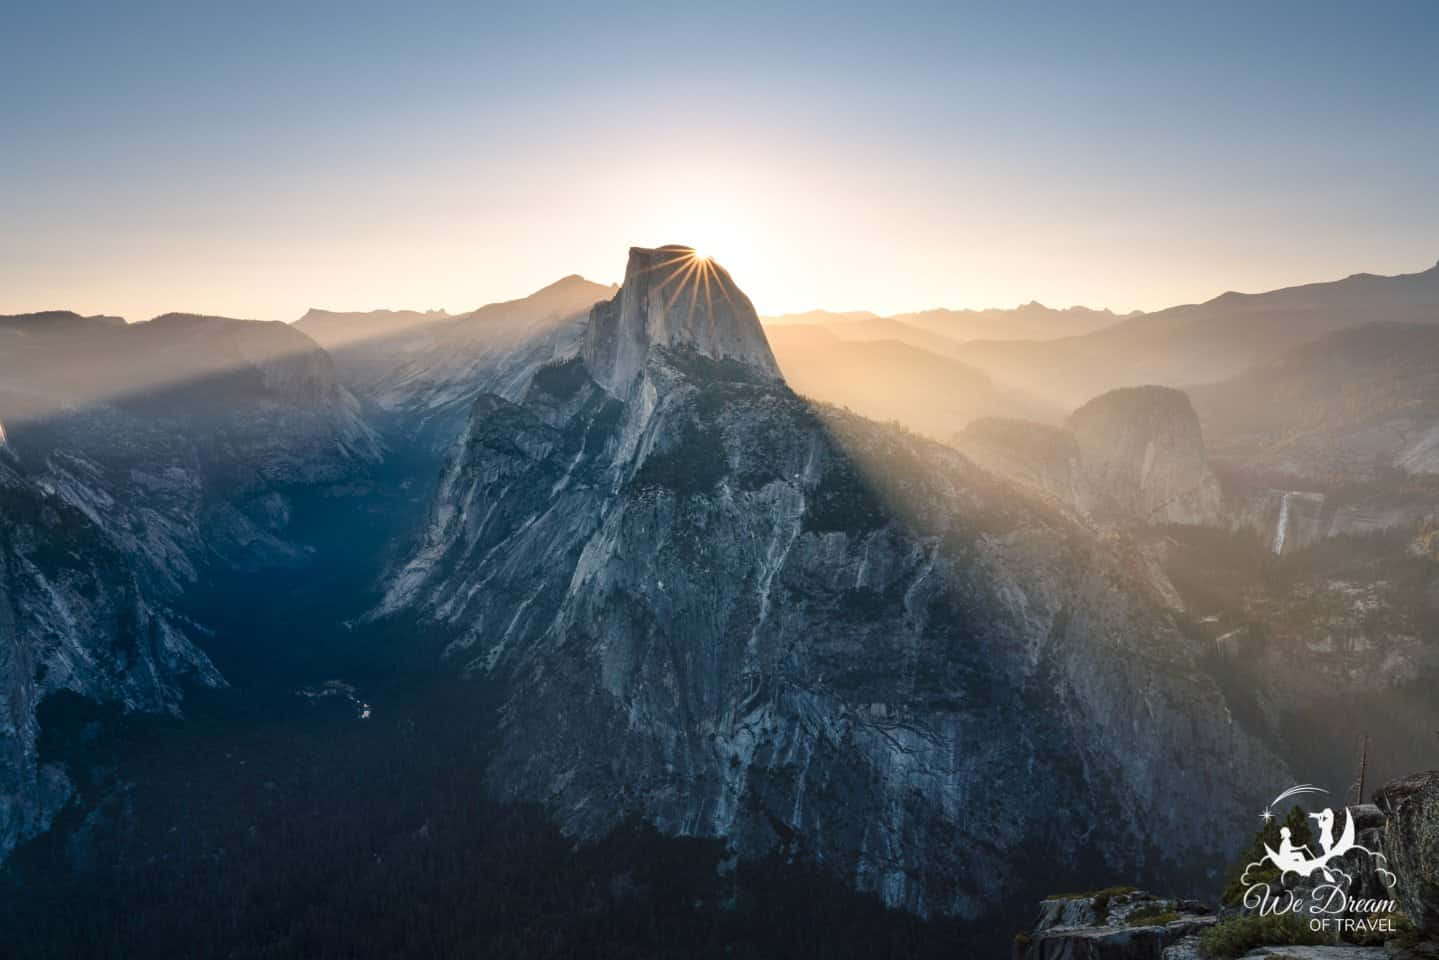 Begin your second day in Yosemite National Park with an unbeatable sunrise view at Glacier Point.